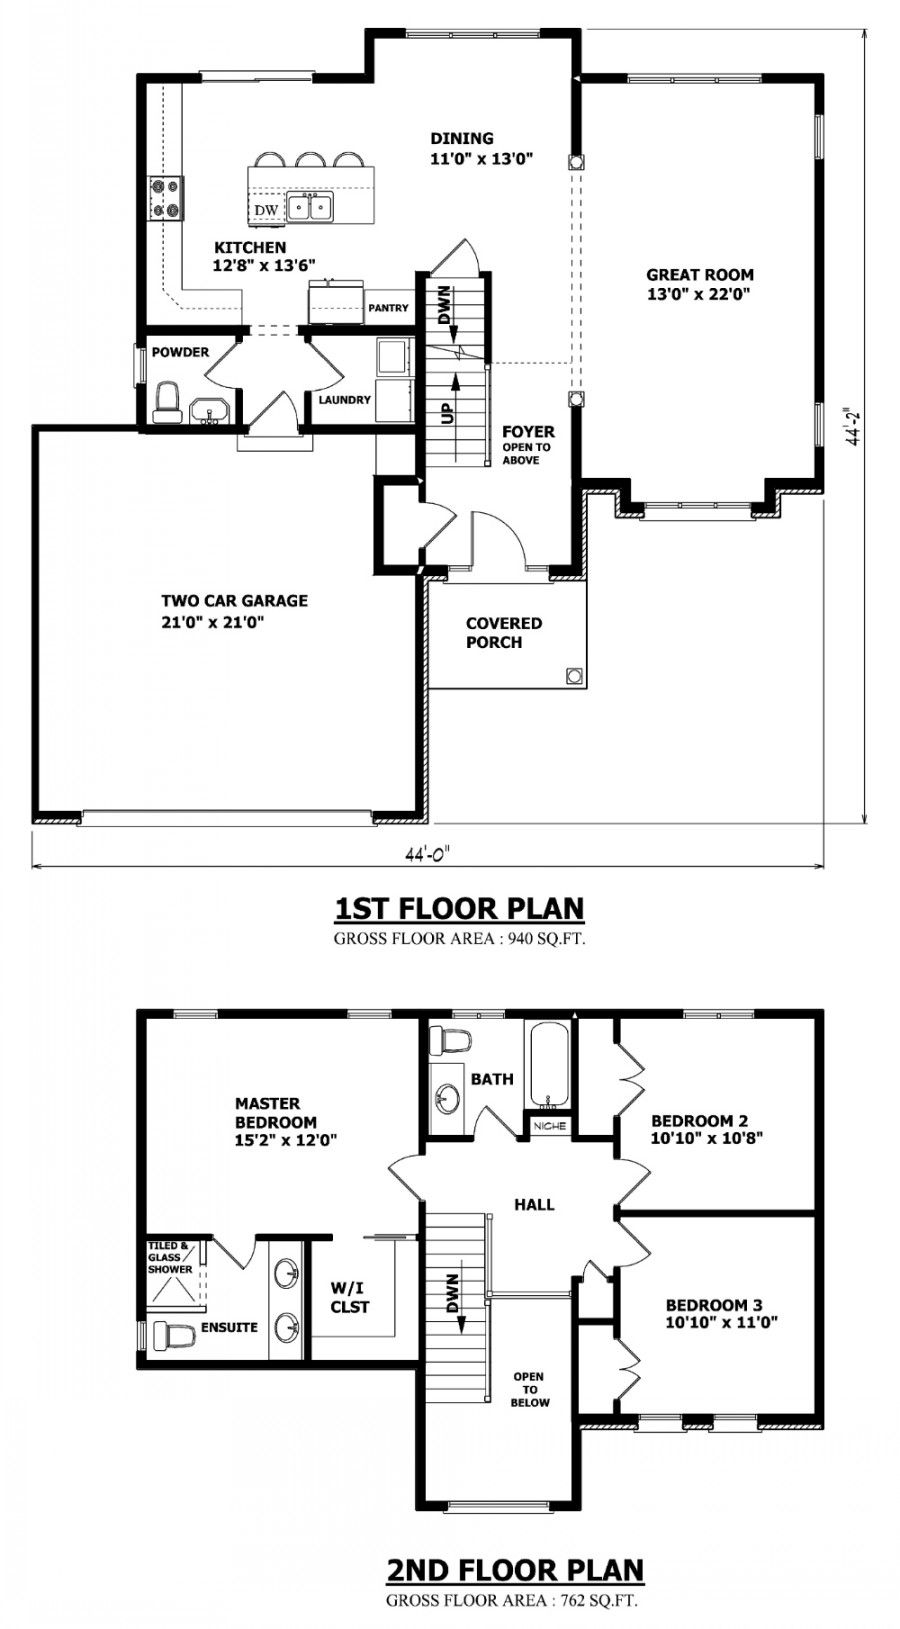 Home designs custom house plans stock house plans amp for 2 story house plans